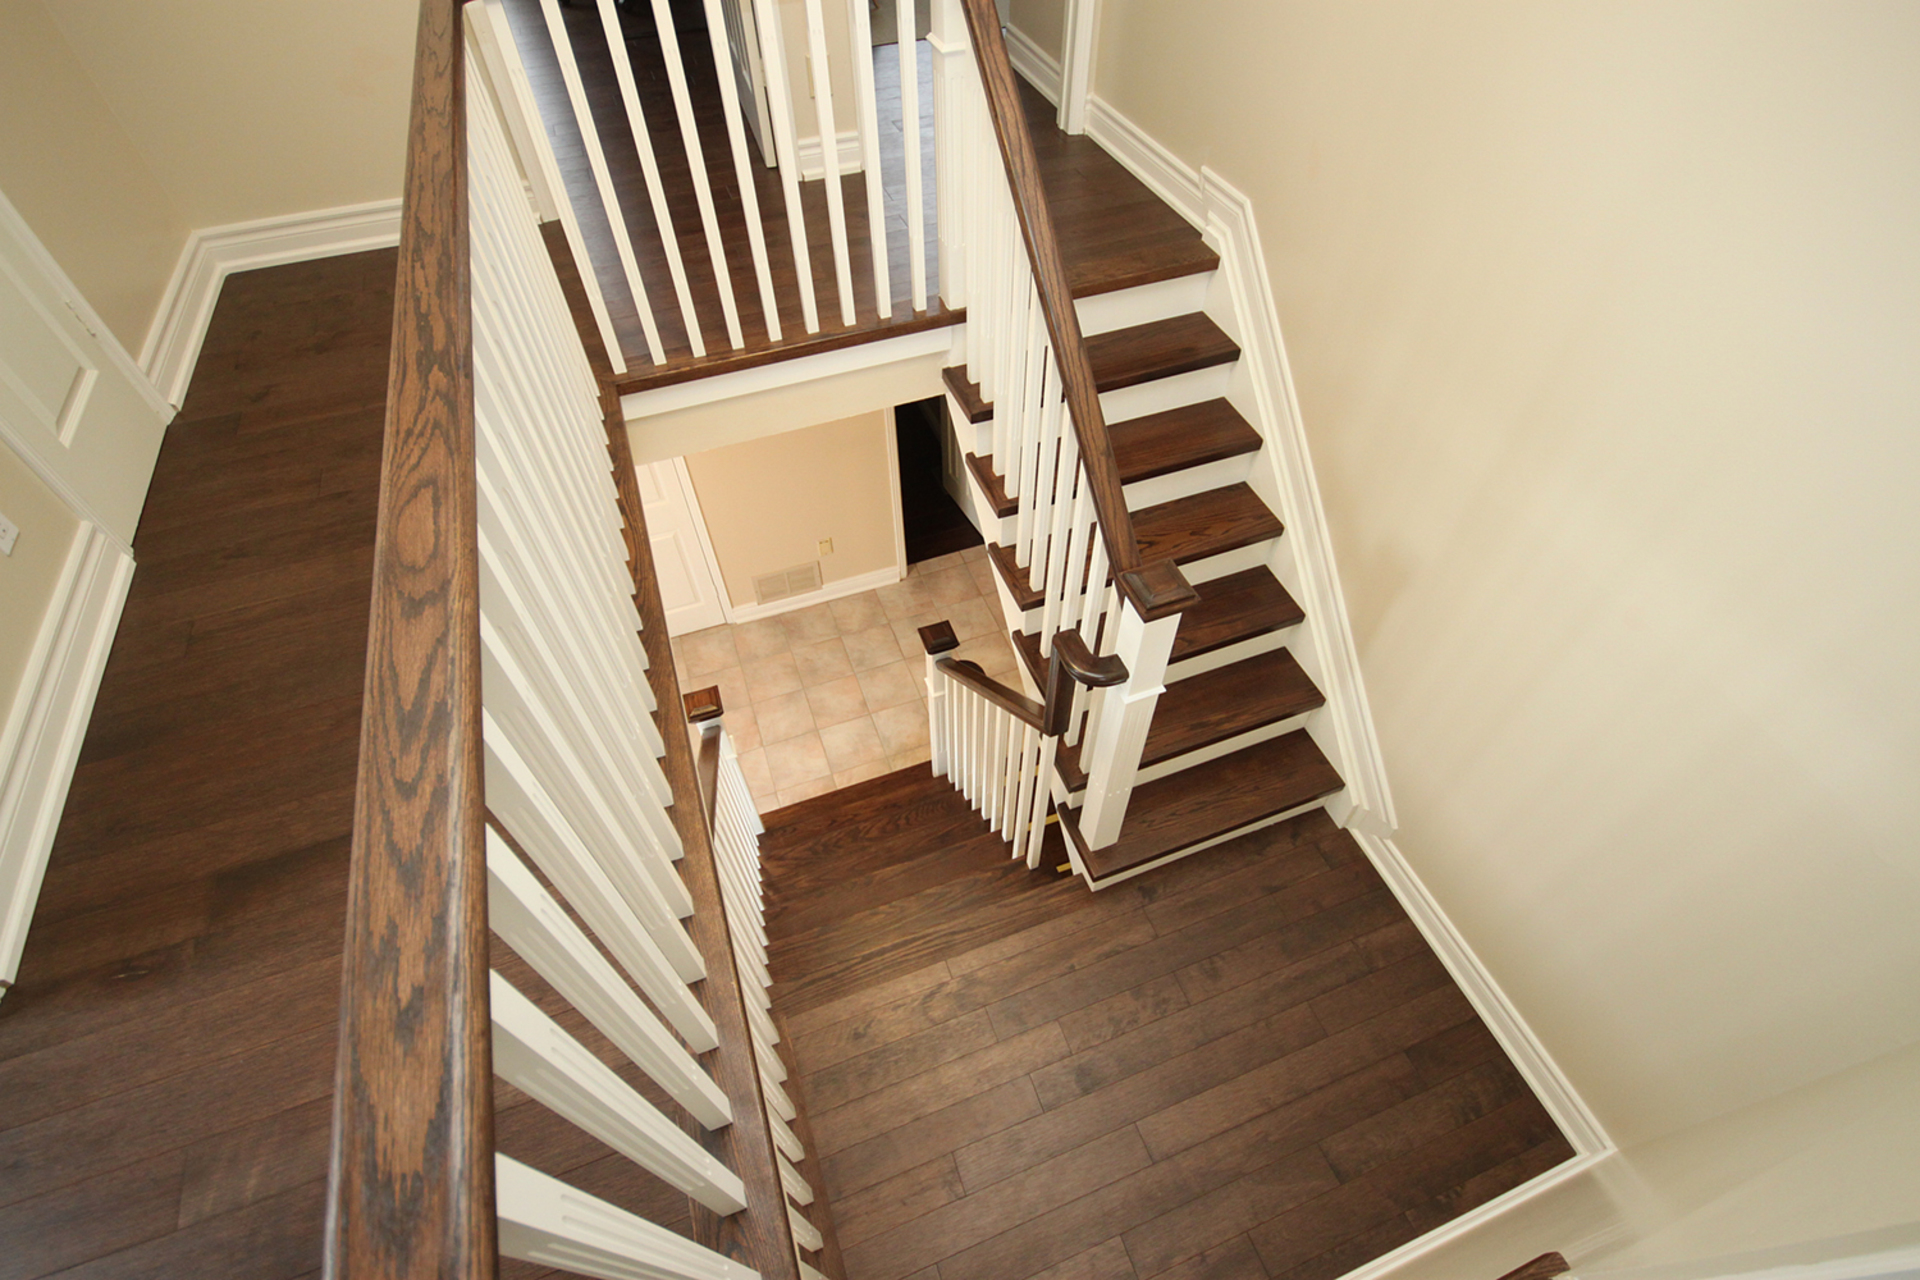 Staircase at 14 Gretman Crescent, Aileen-Willowbrook, Markham